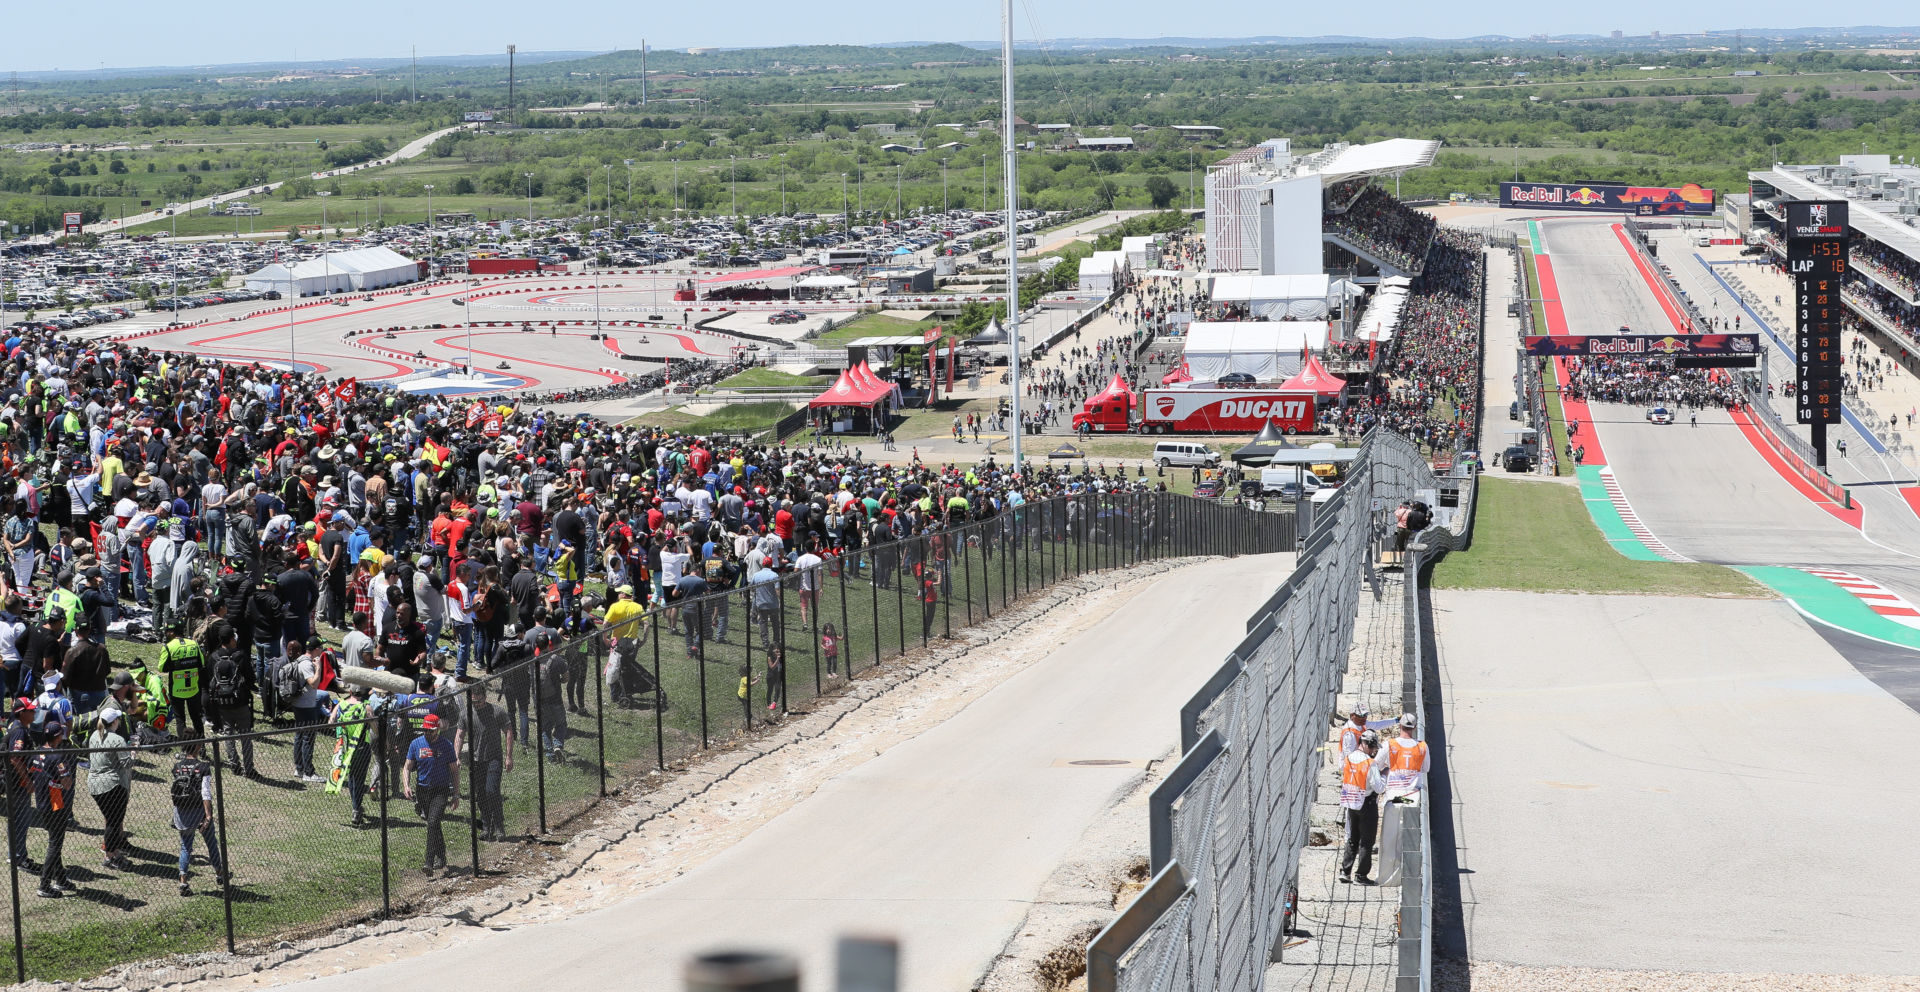 A scene from the 2019 Red Bull Grand Prix of The Americas at Circuit of The Americas. Photo by Brian J. Nelson.